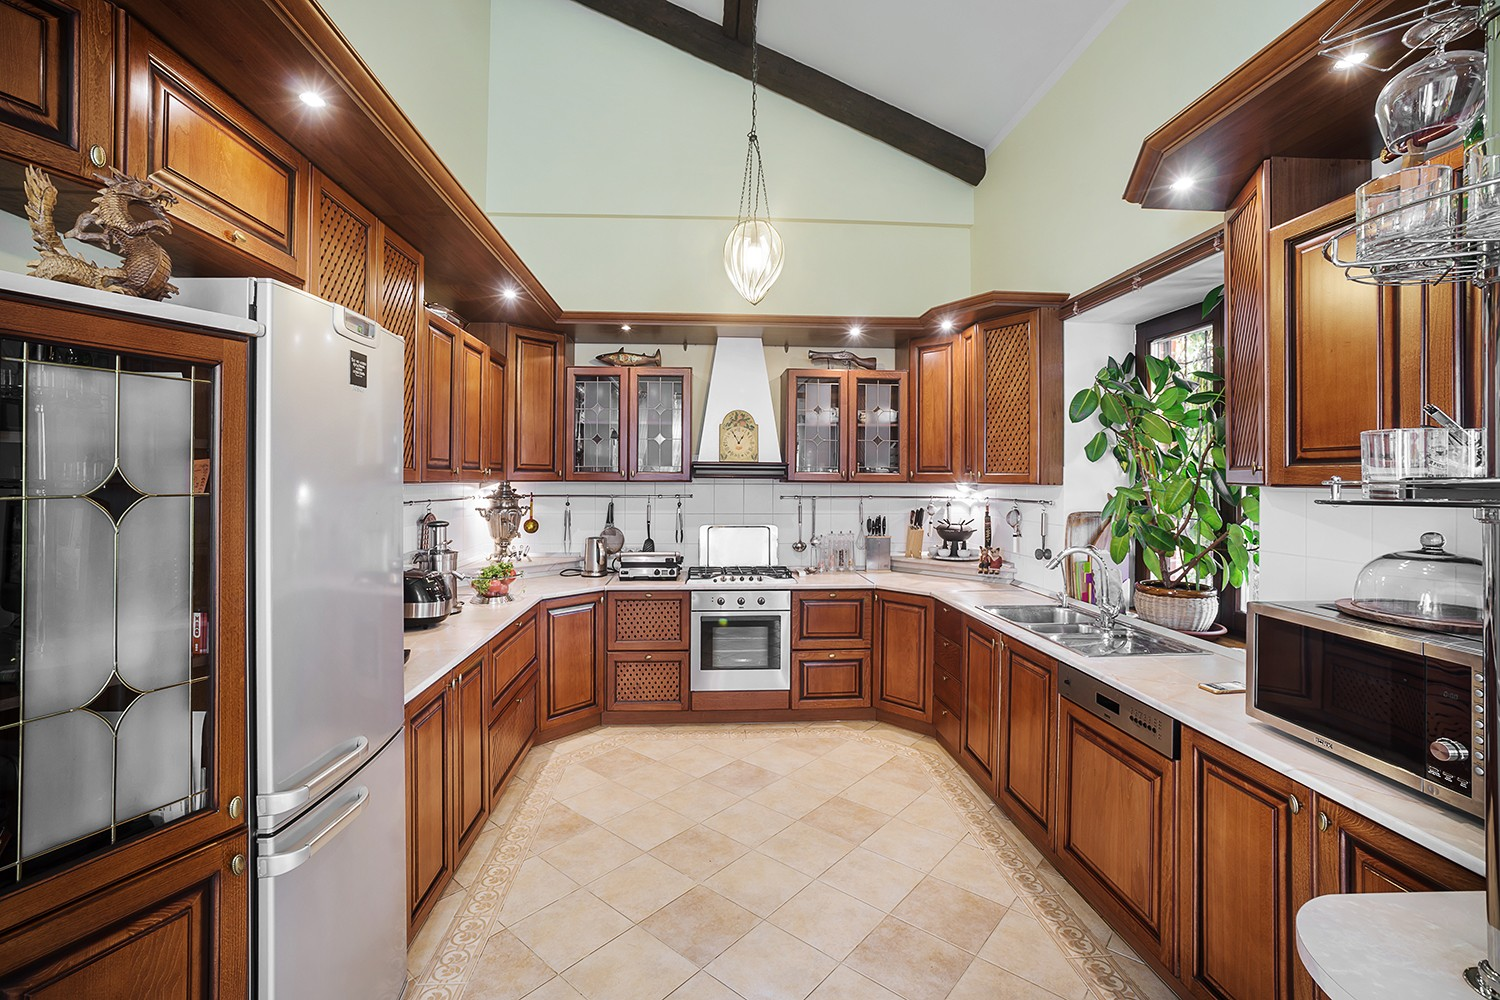 Interior photos of the kitchen in the villa. The building is for sale. Photographer Kirill Toll